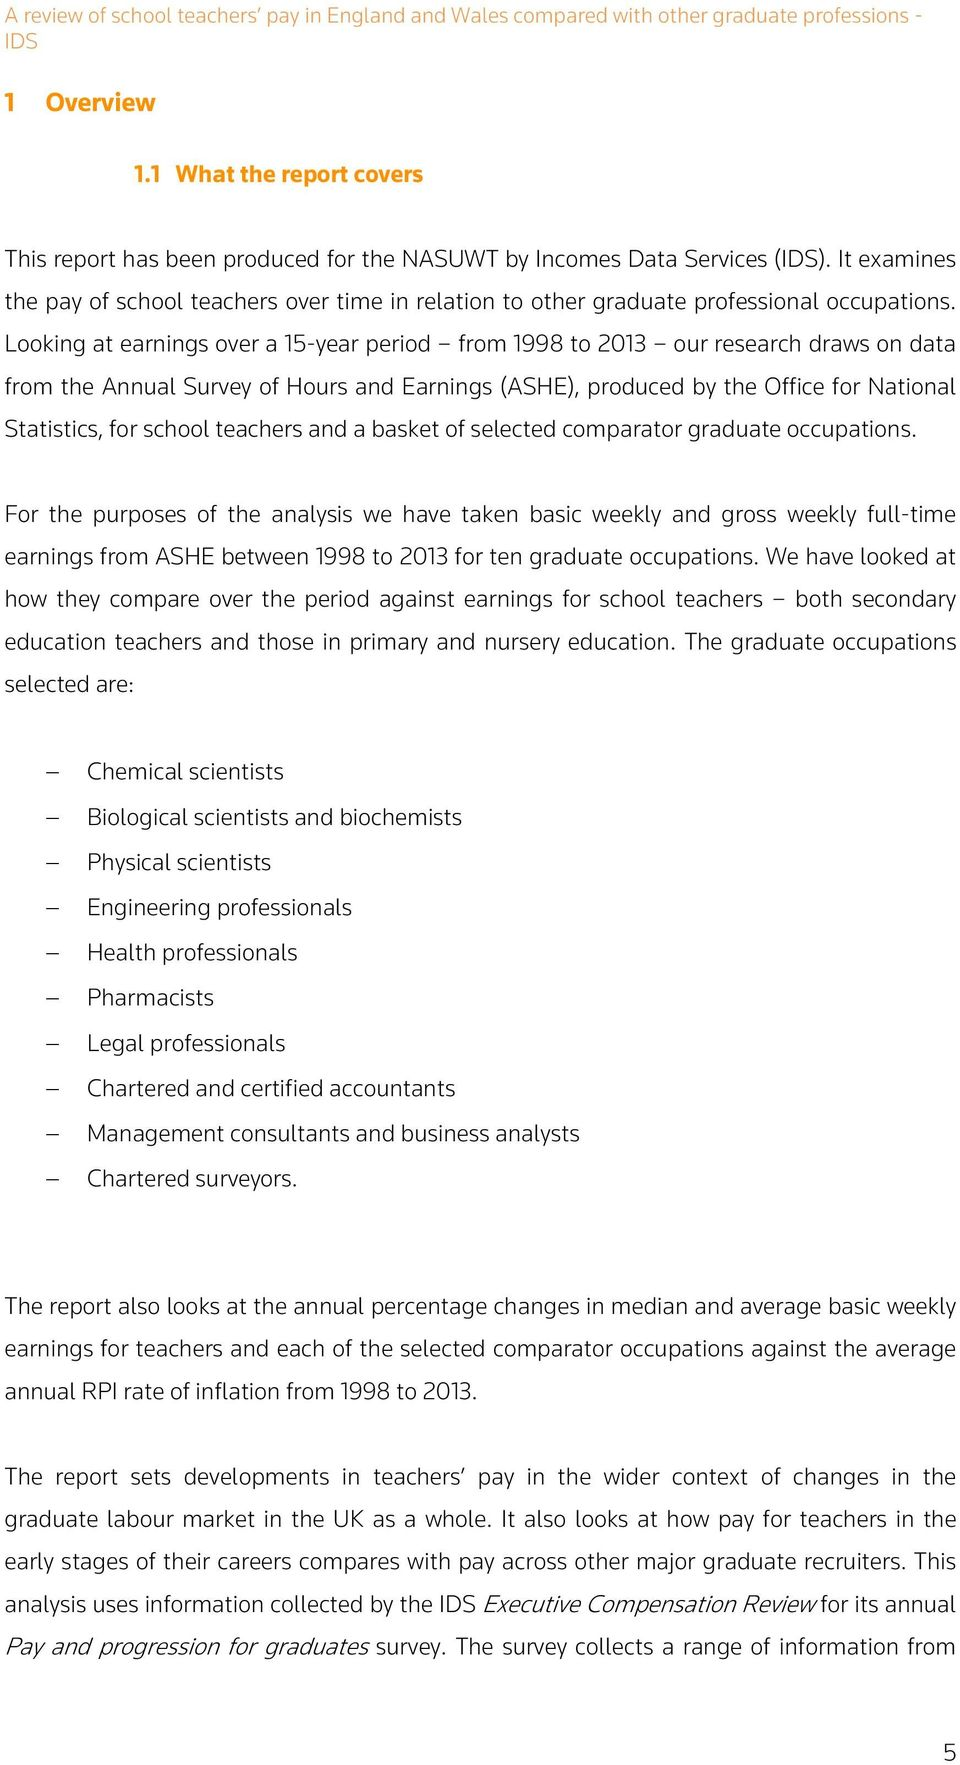 Looking at earnings over a 15-year period from 1998 to 2013 our research draws on data from the Annual Survey of Hours and Earnings (ASHE), produced by the Office for National Statistics, for school